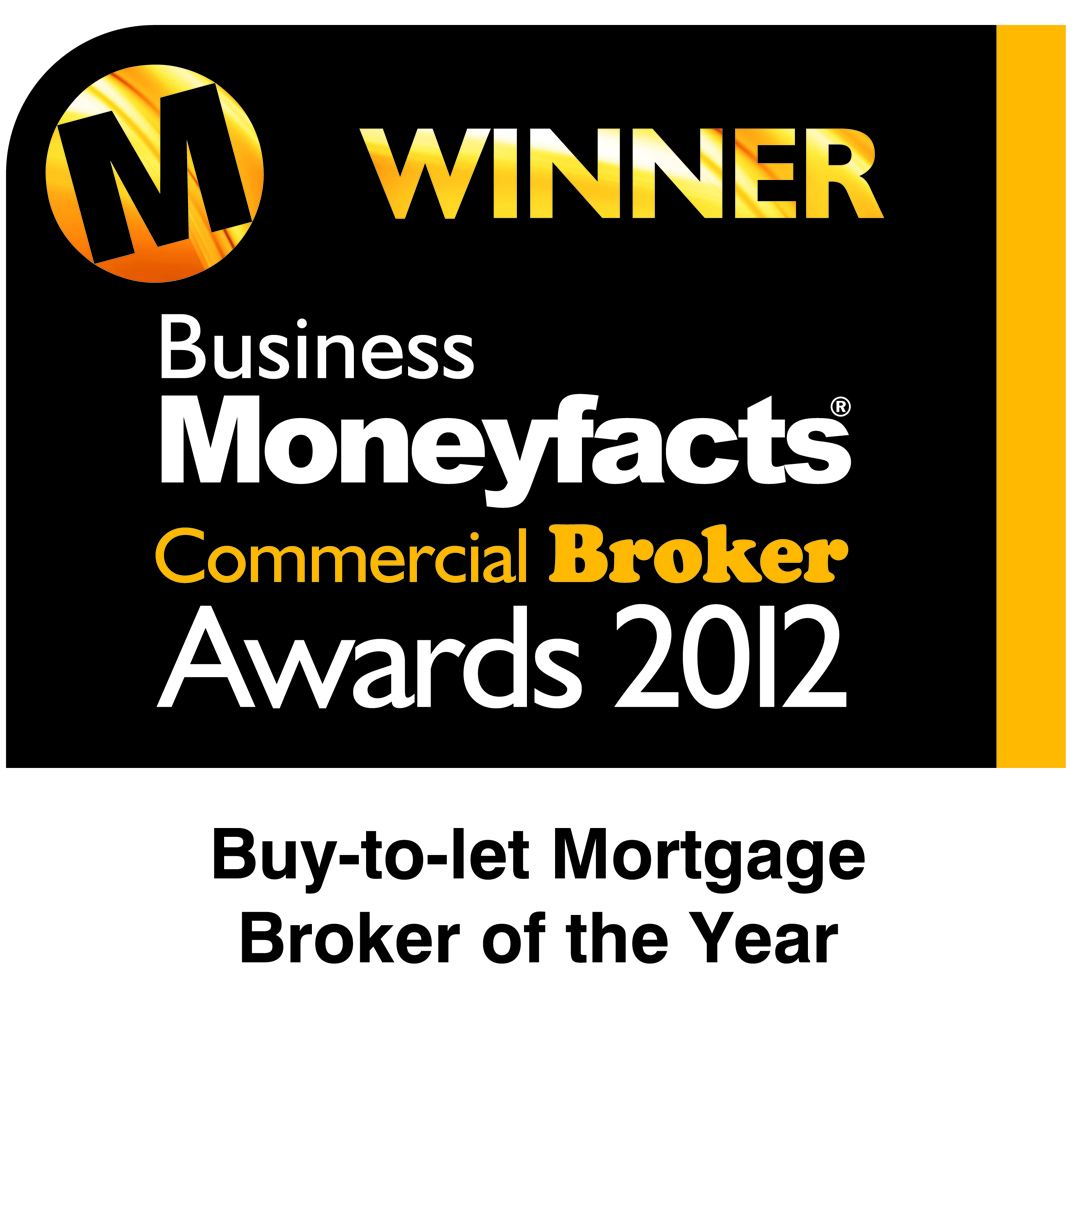 Buy to Let Broker of the Year 2012